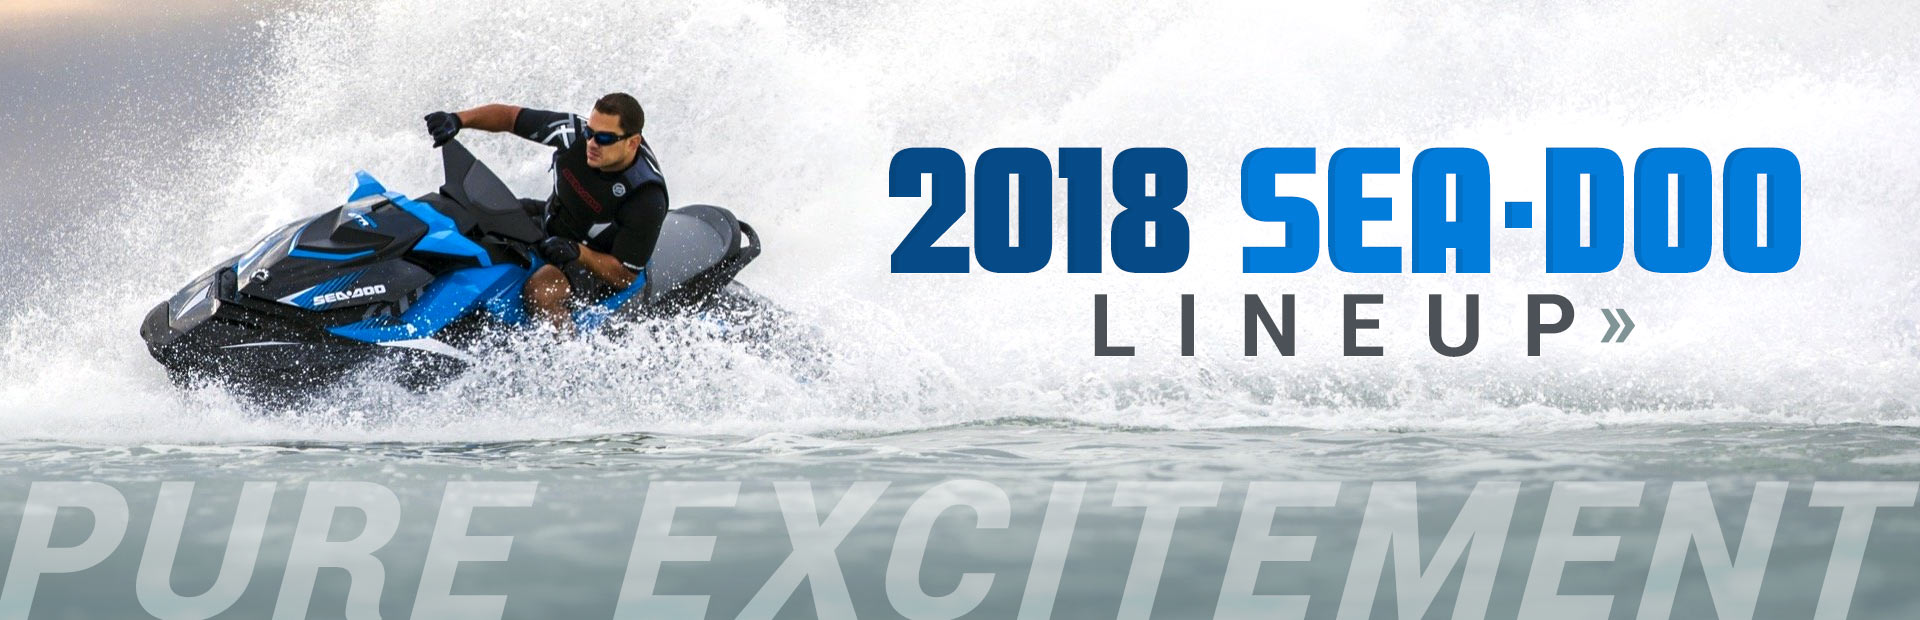 Click here to view the 2018 Sea-Doo lineup.